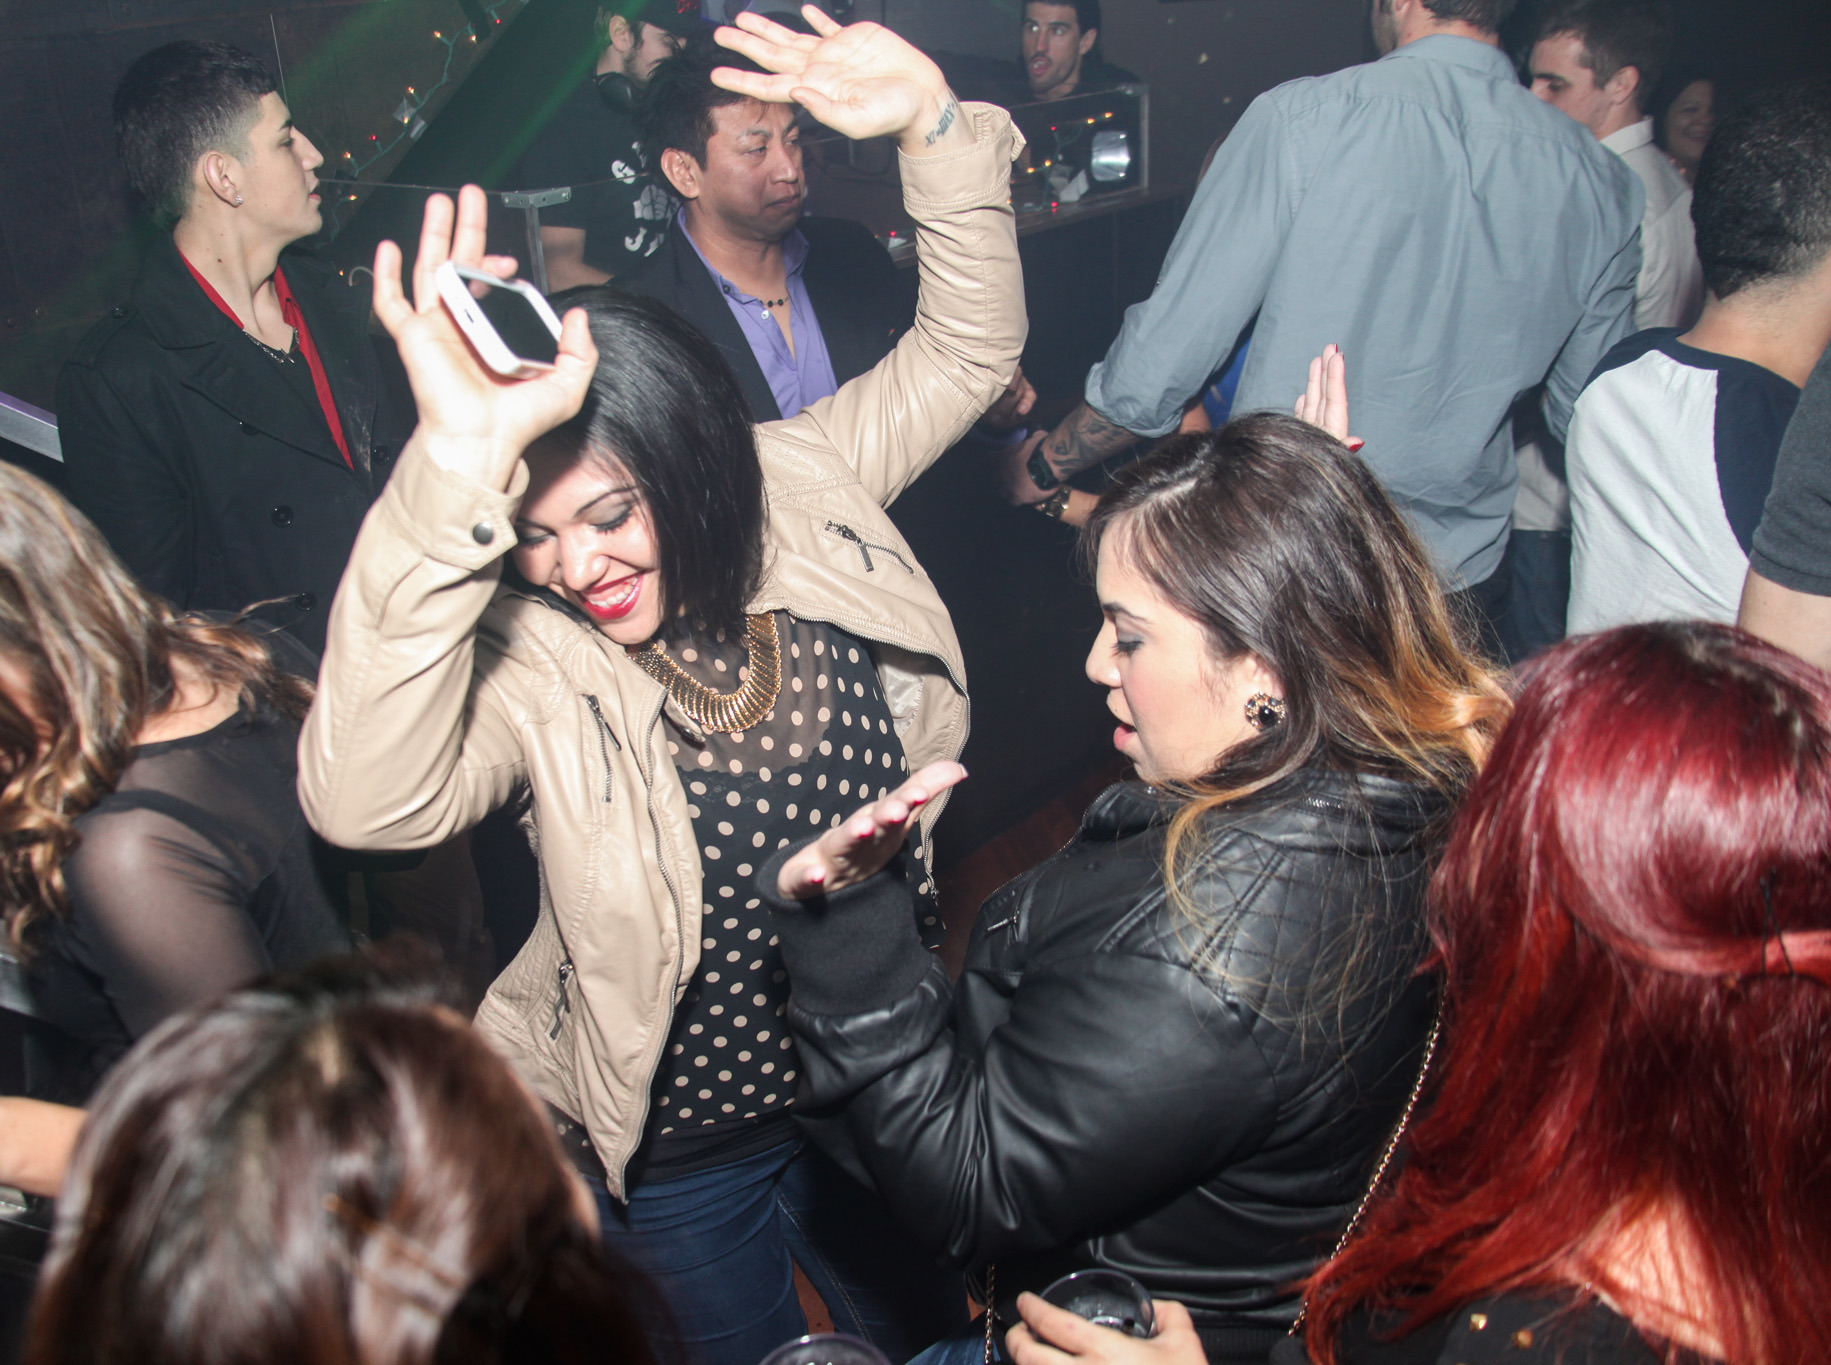 Best Chicago dance clubs